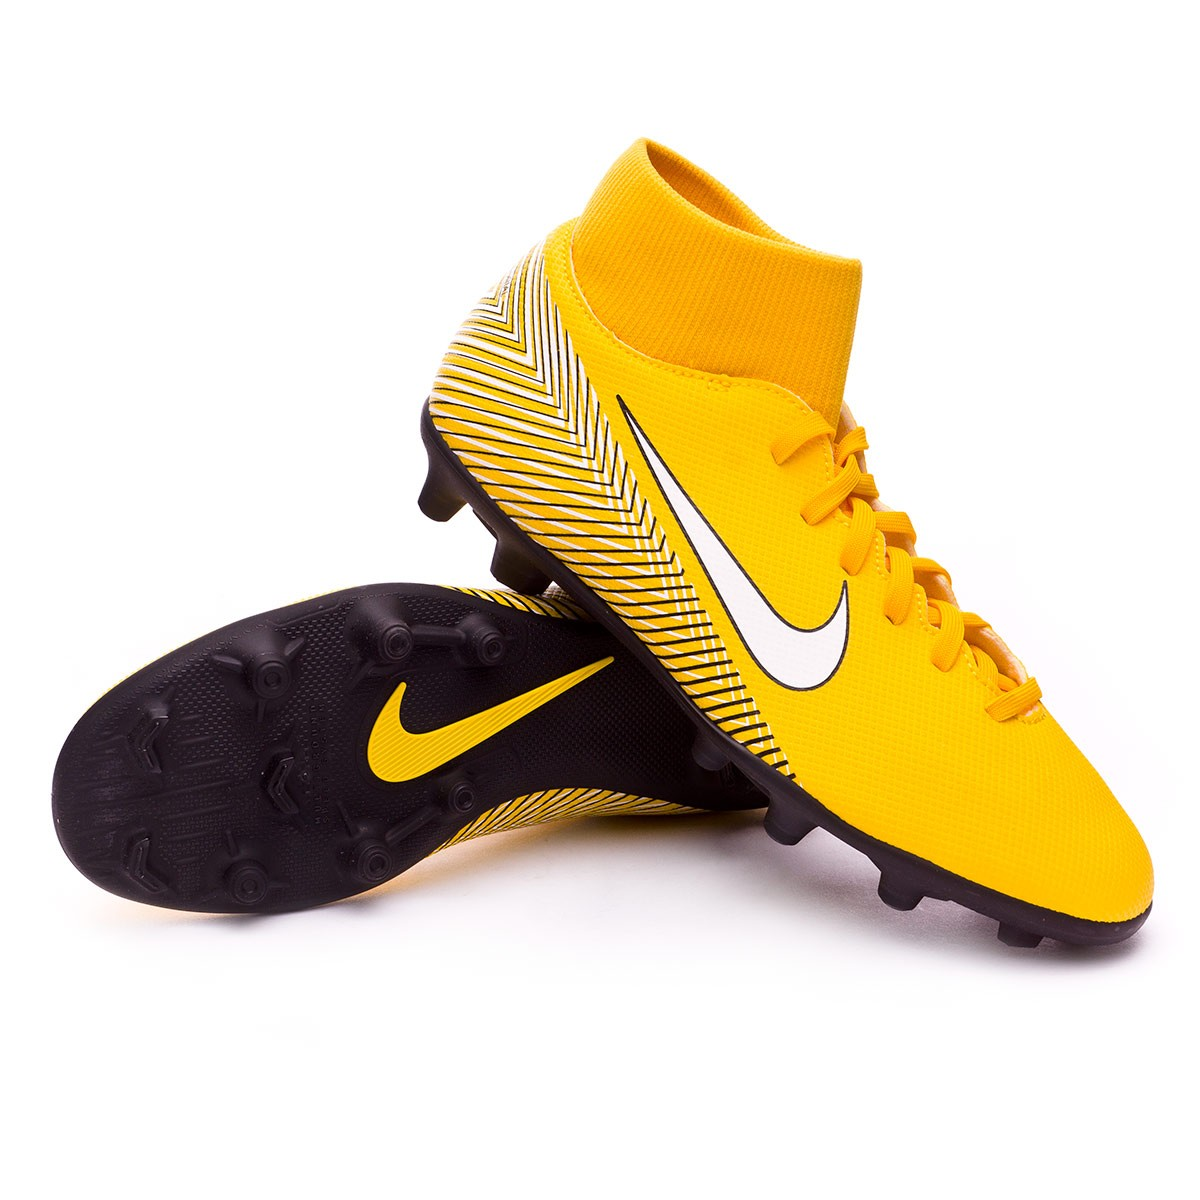 1a174436e Football Boots Nike Mercurial Superfly VI Club MG Neymar Yellow ...